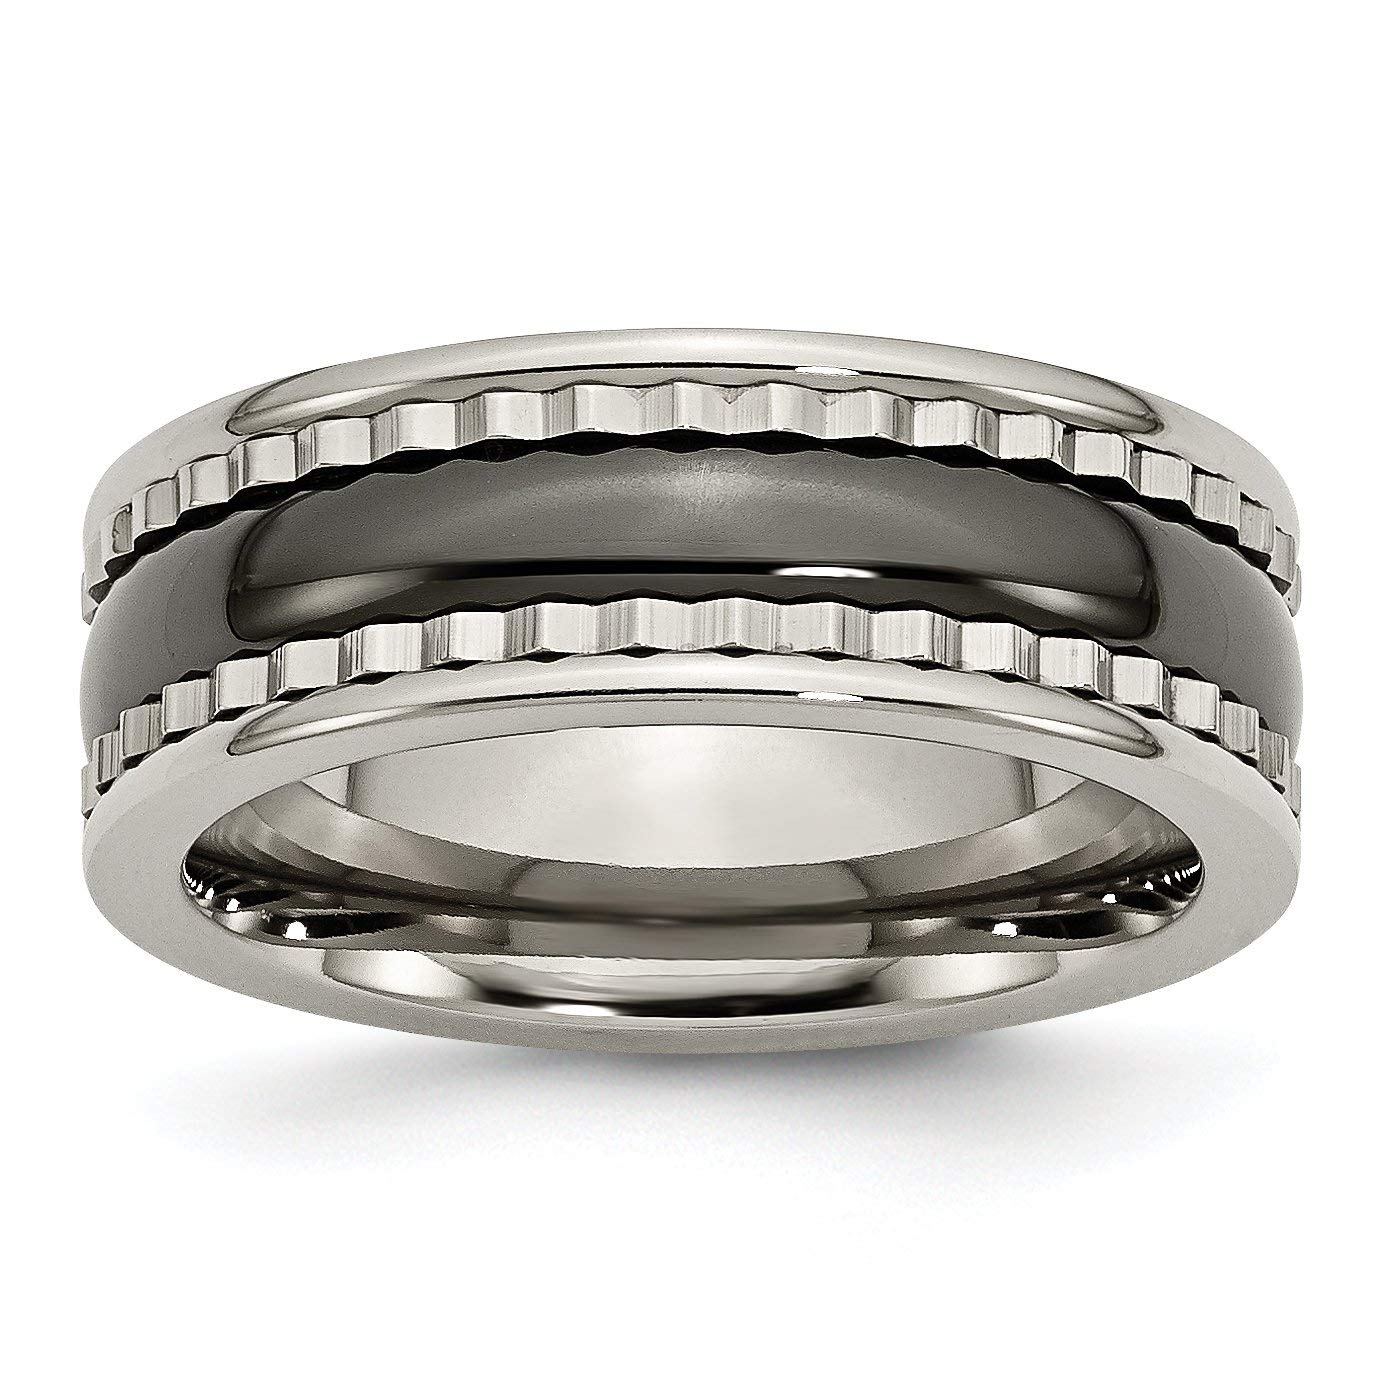 Titanium w/Sawtooth Accent/Polished Black Ceramic Center 8mm Band TB378-7<BR>Polished | Engravable | Titanium | Ceramic